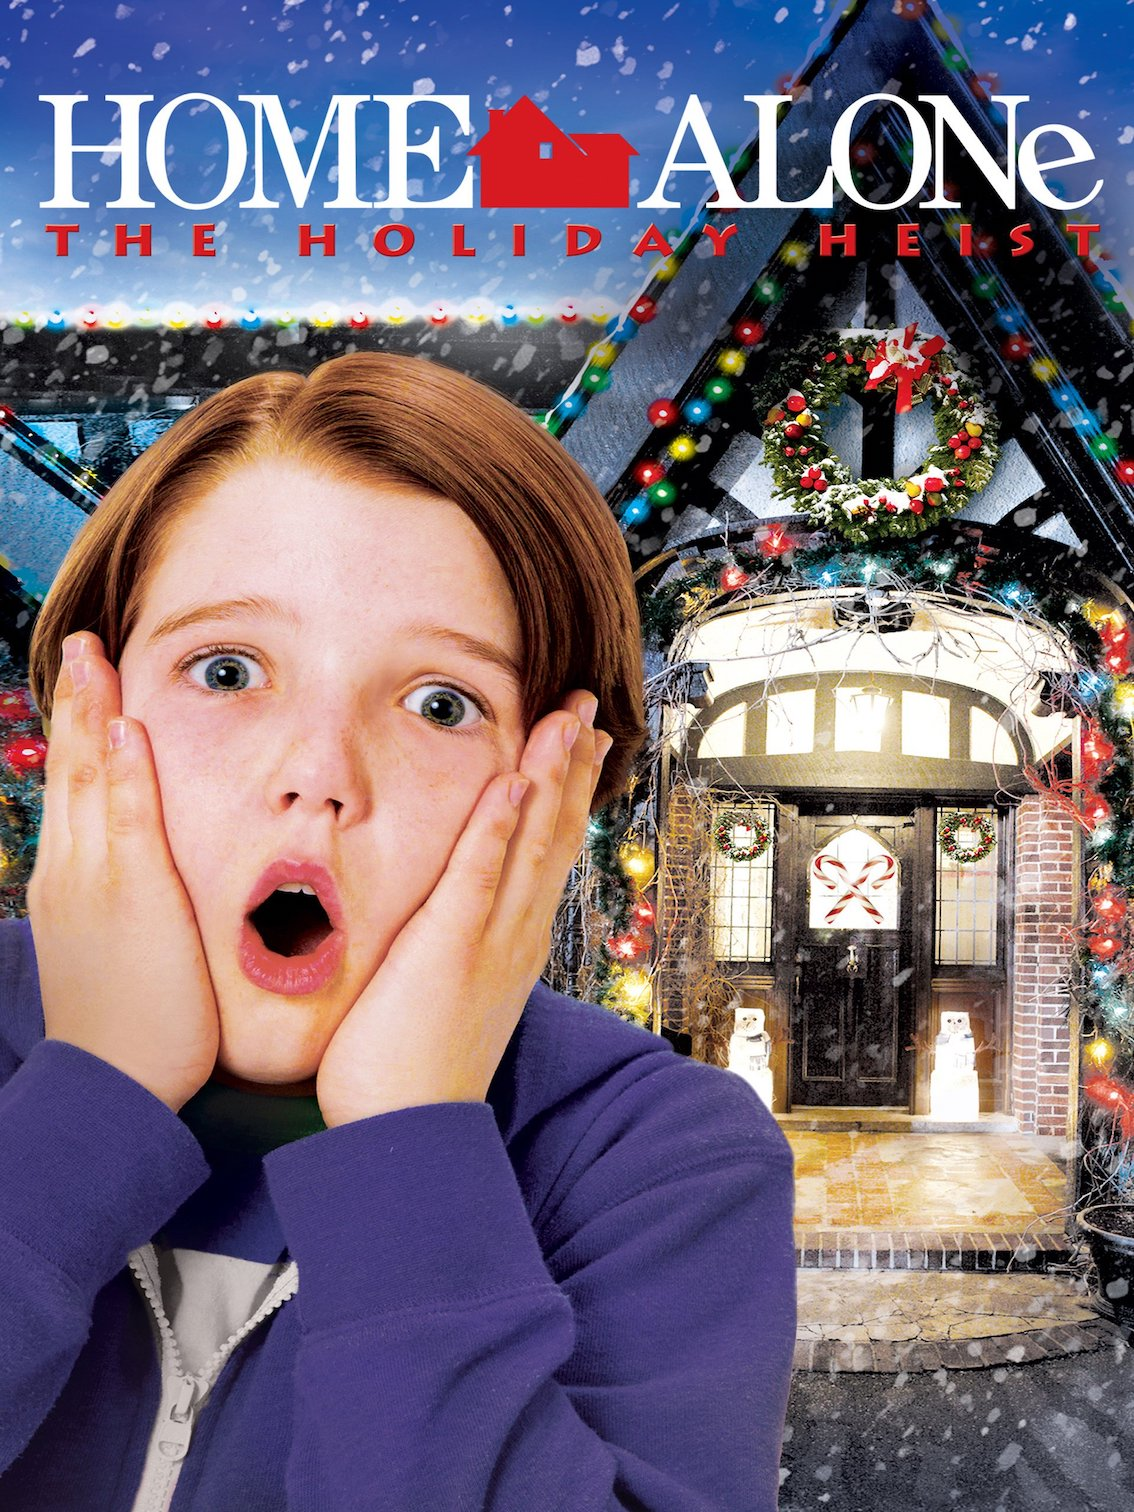 Click image for larger version.  Name:Home Alone 5.jpg Views:250 Size:437.8 KB ID:694